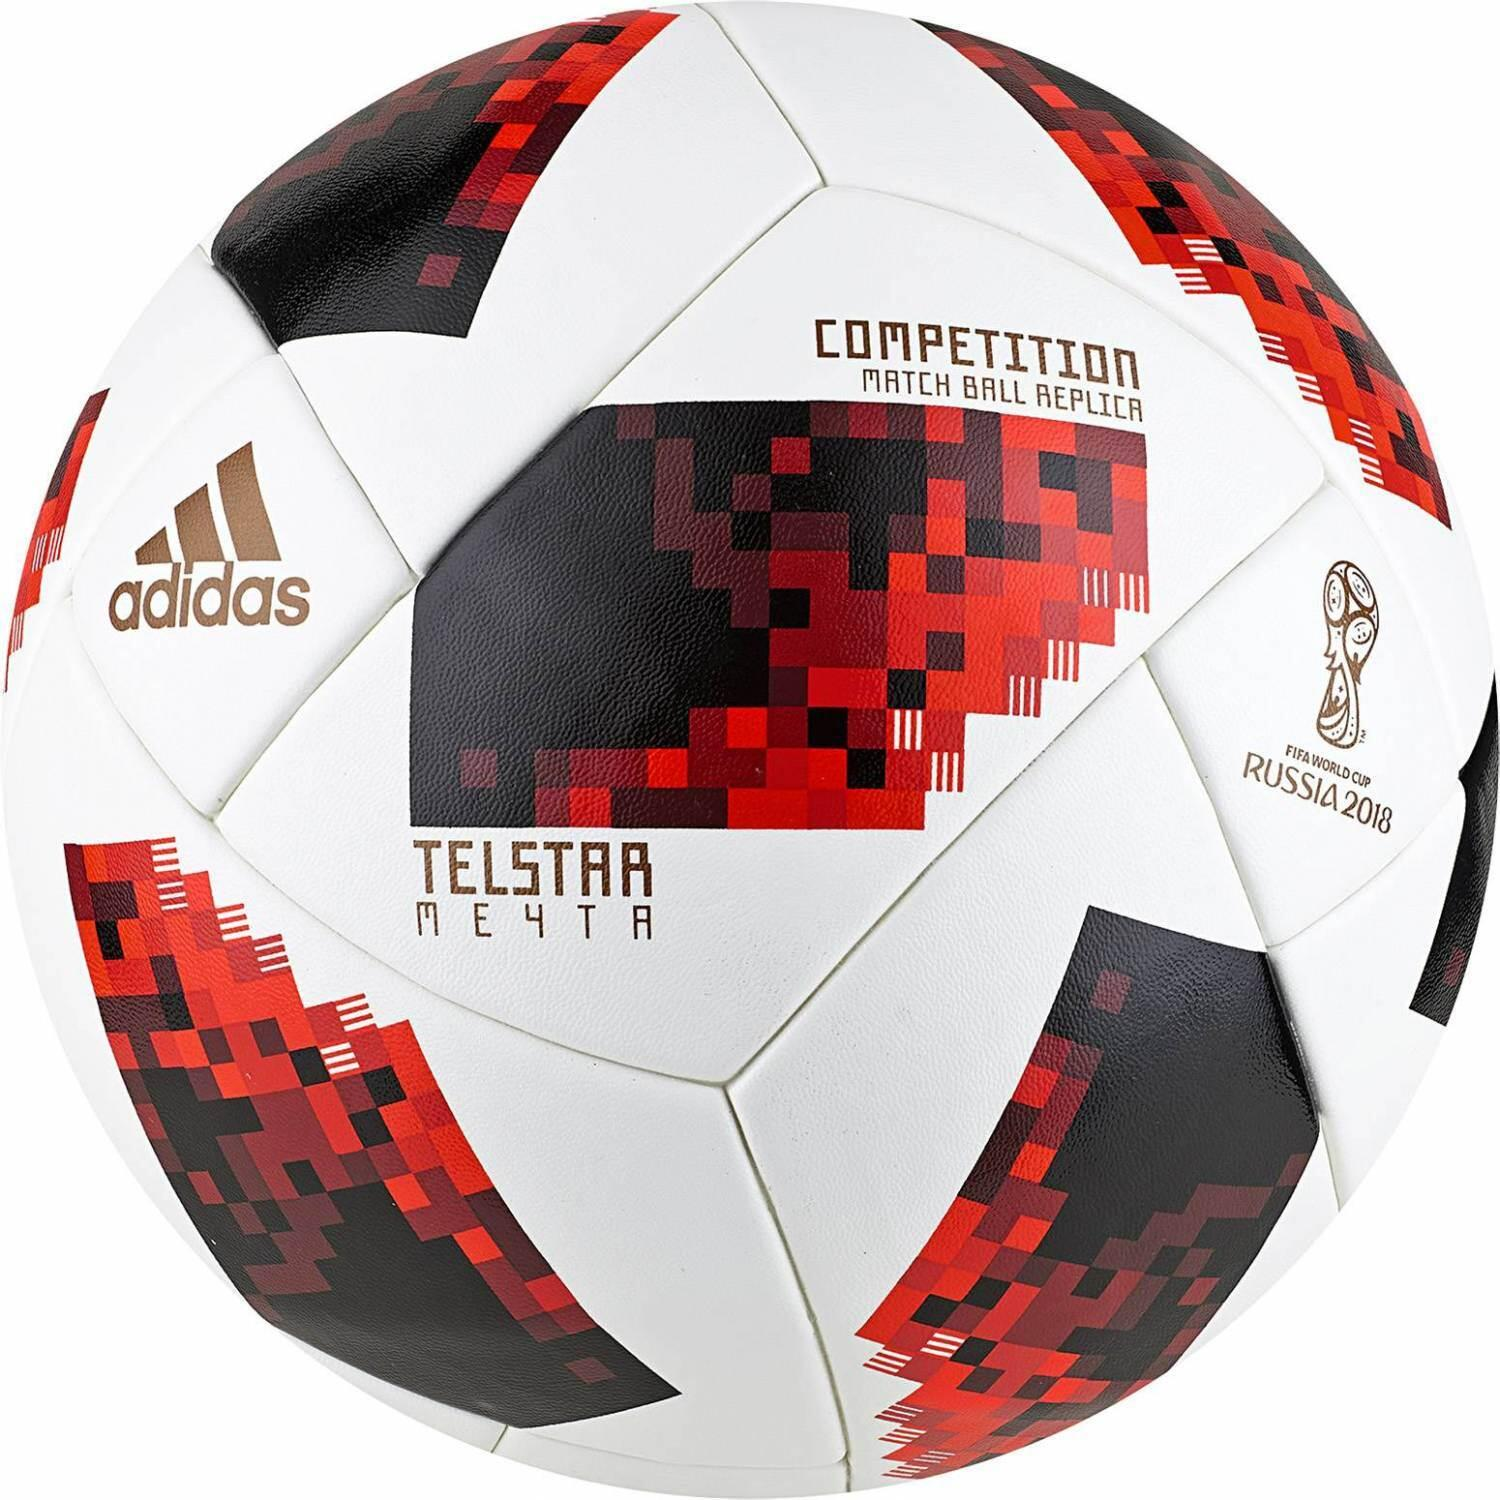 adidas-fu-szlig-ball-cup-ko-competition-2018-gr-ouml-szlig-e-5-white-solar-red-black-